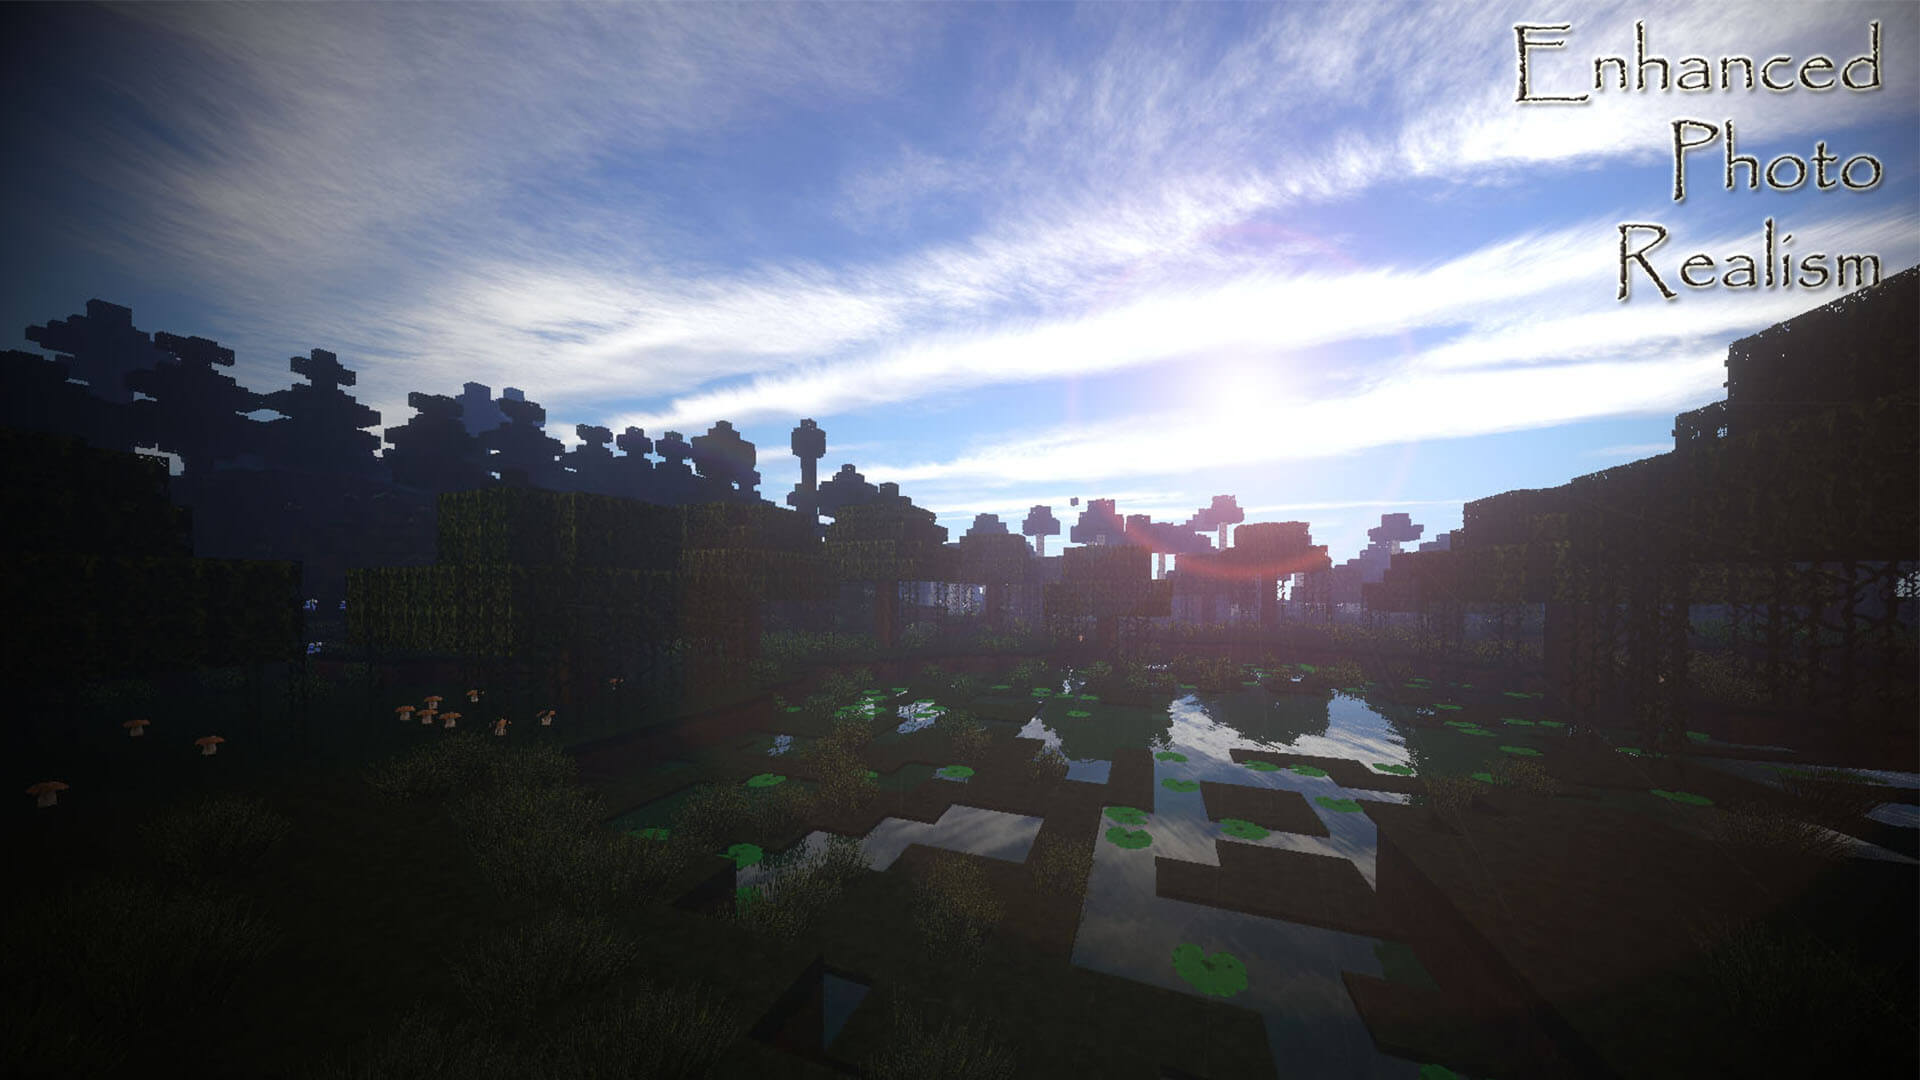 Texture Pack LB Photo Realism - The-Minecraft.fr